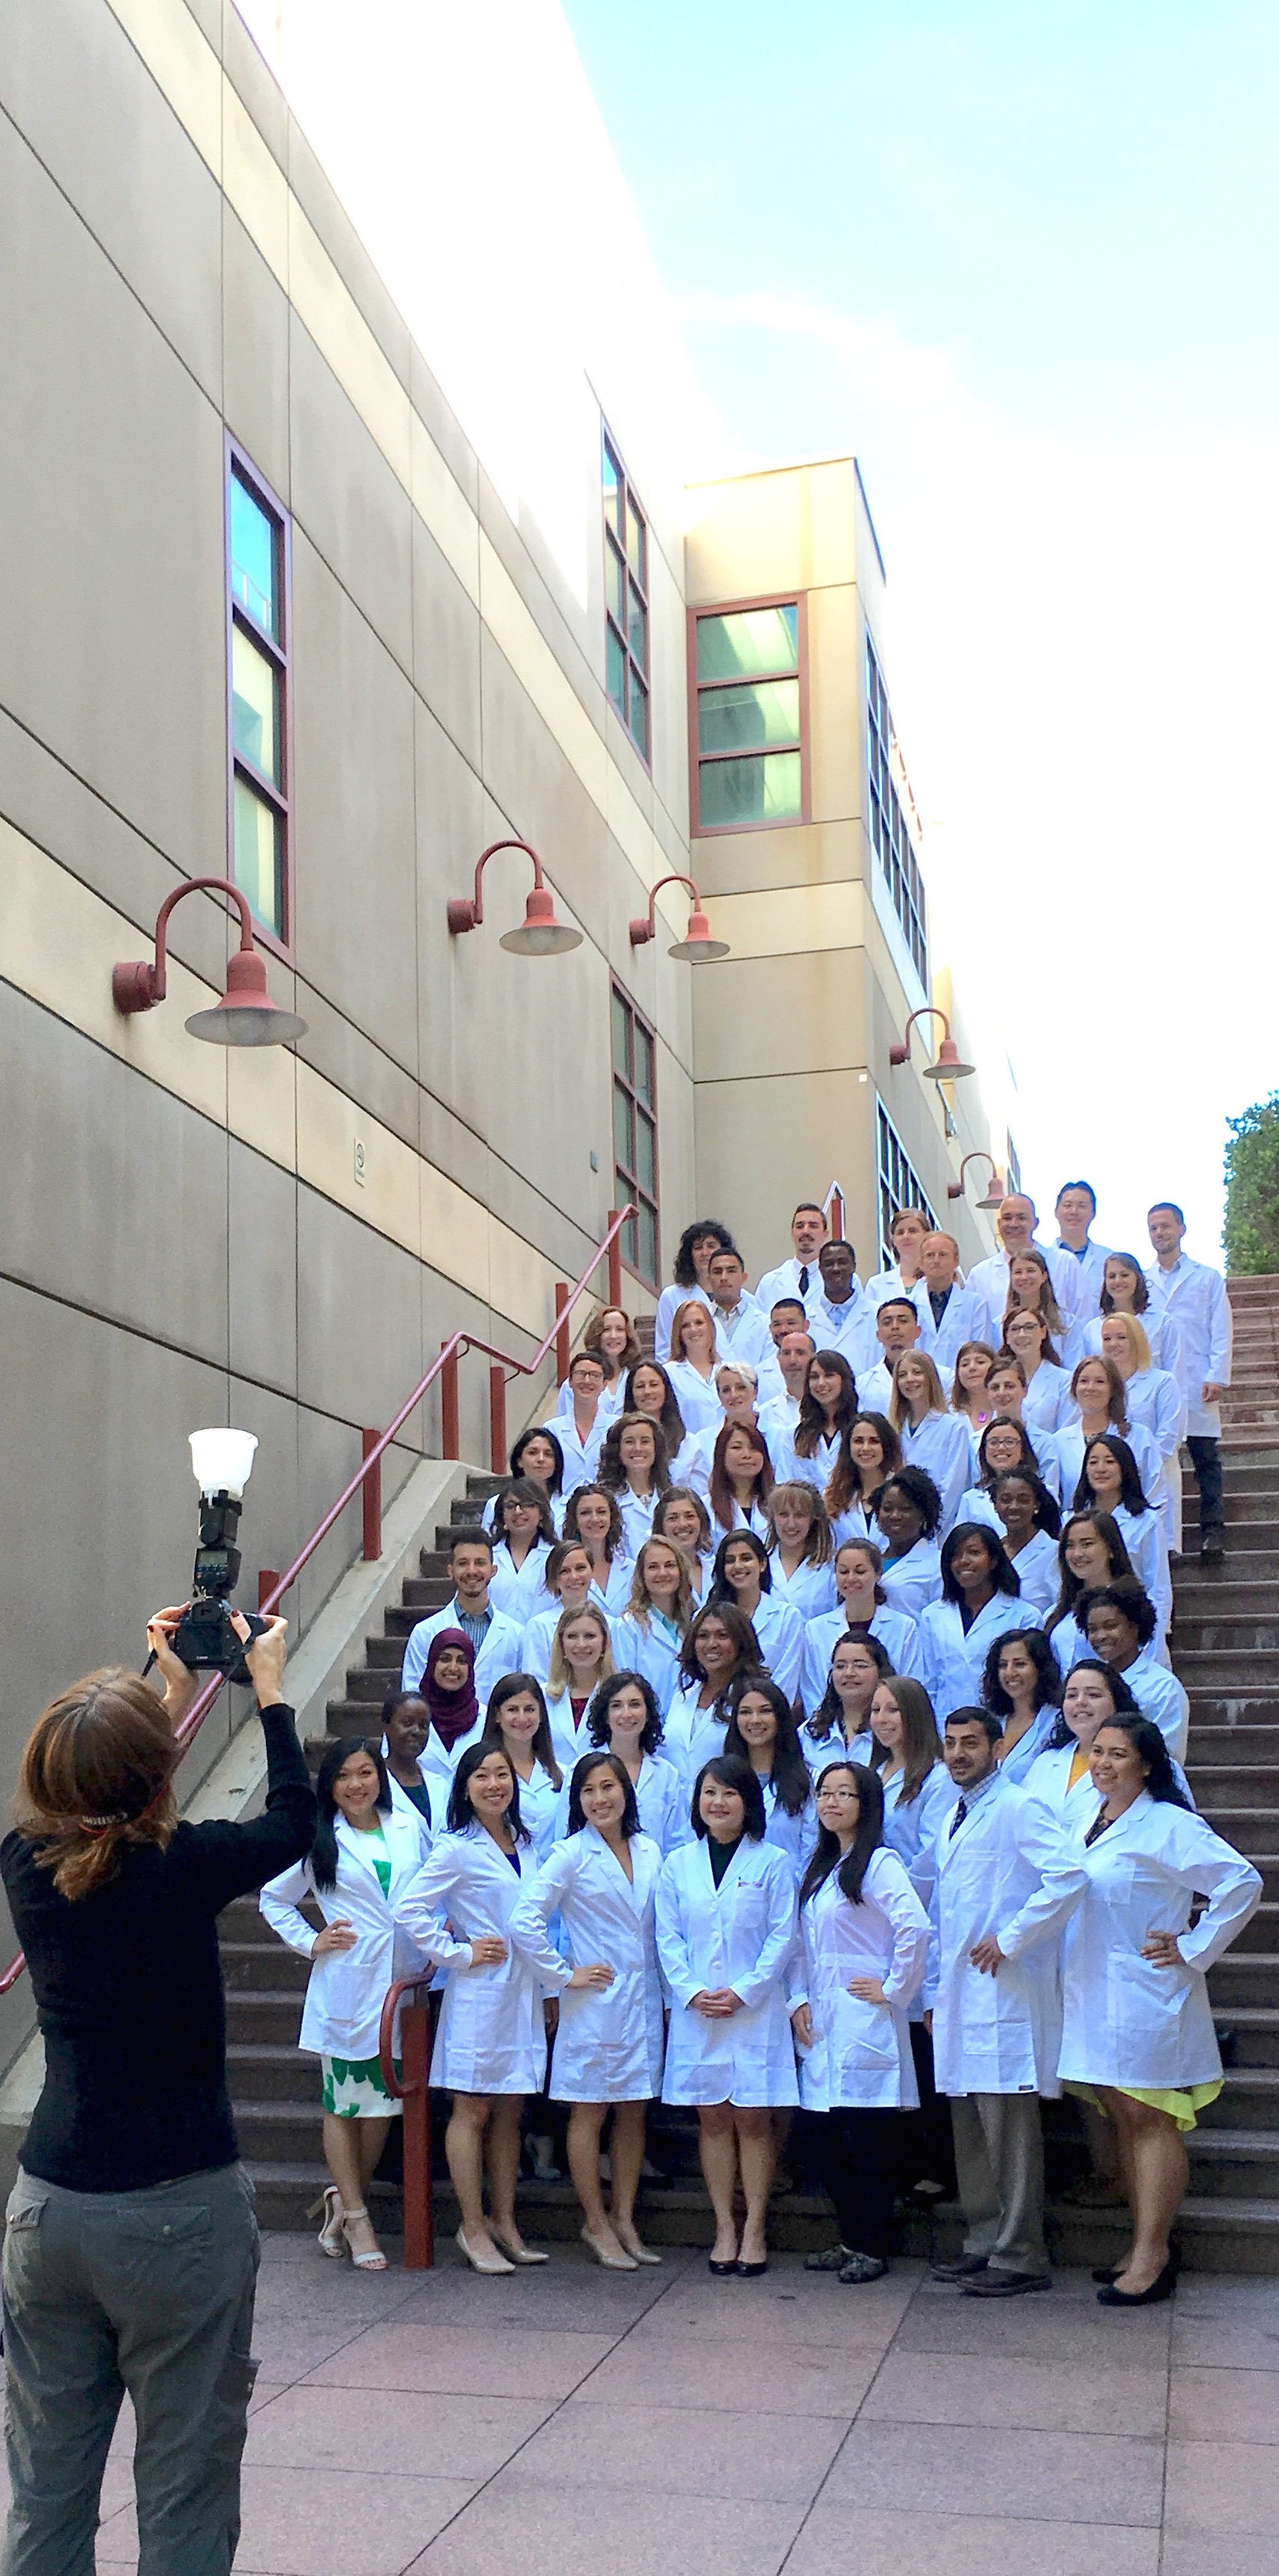 Photographer Susan Merrell takes a photo of our newest cohort of MEPN students.